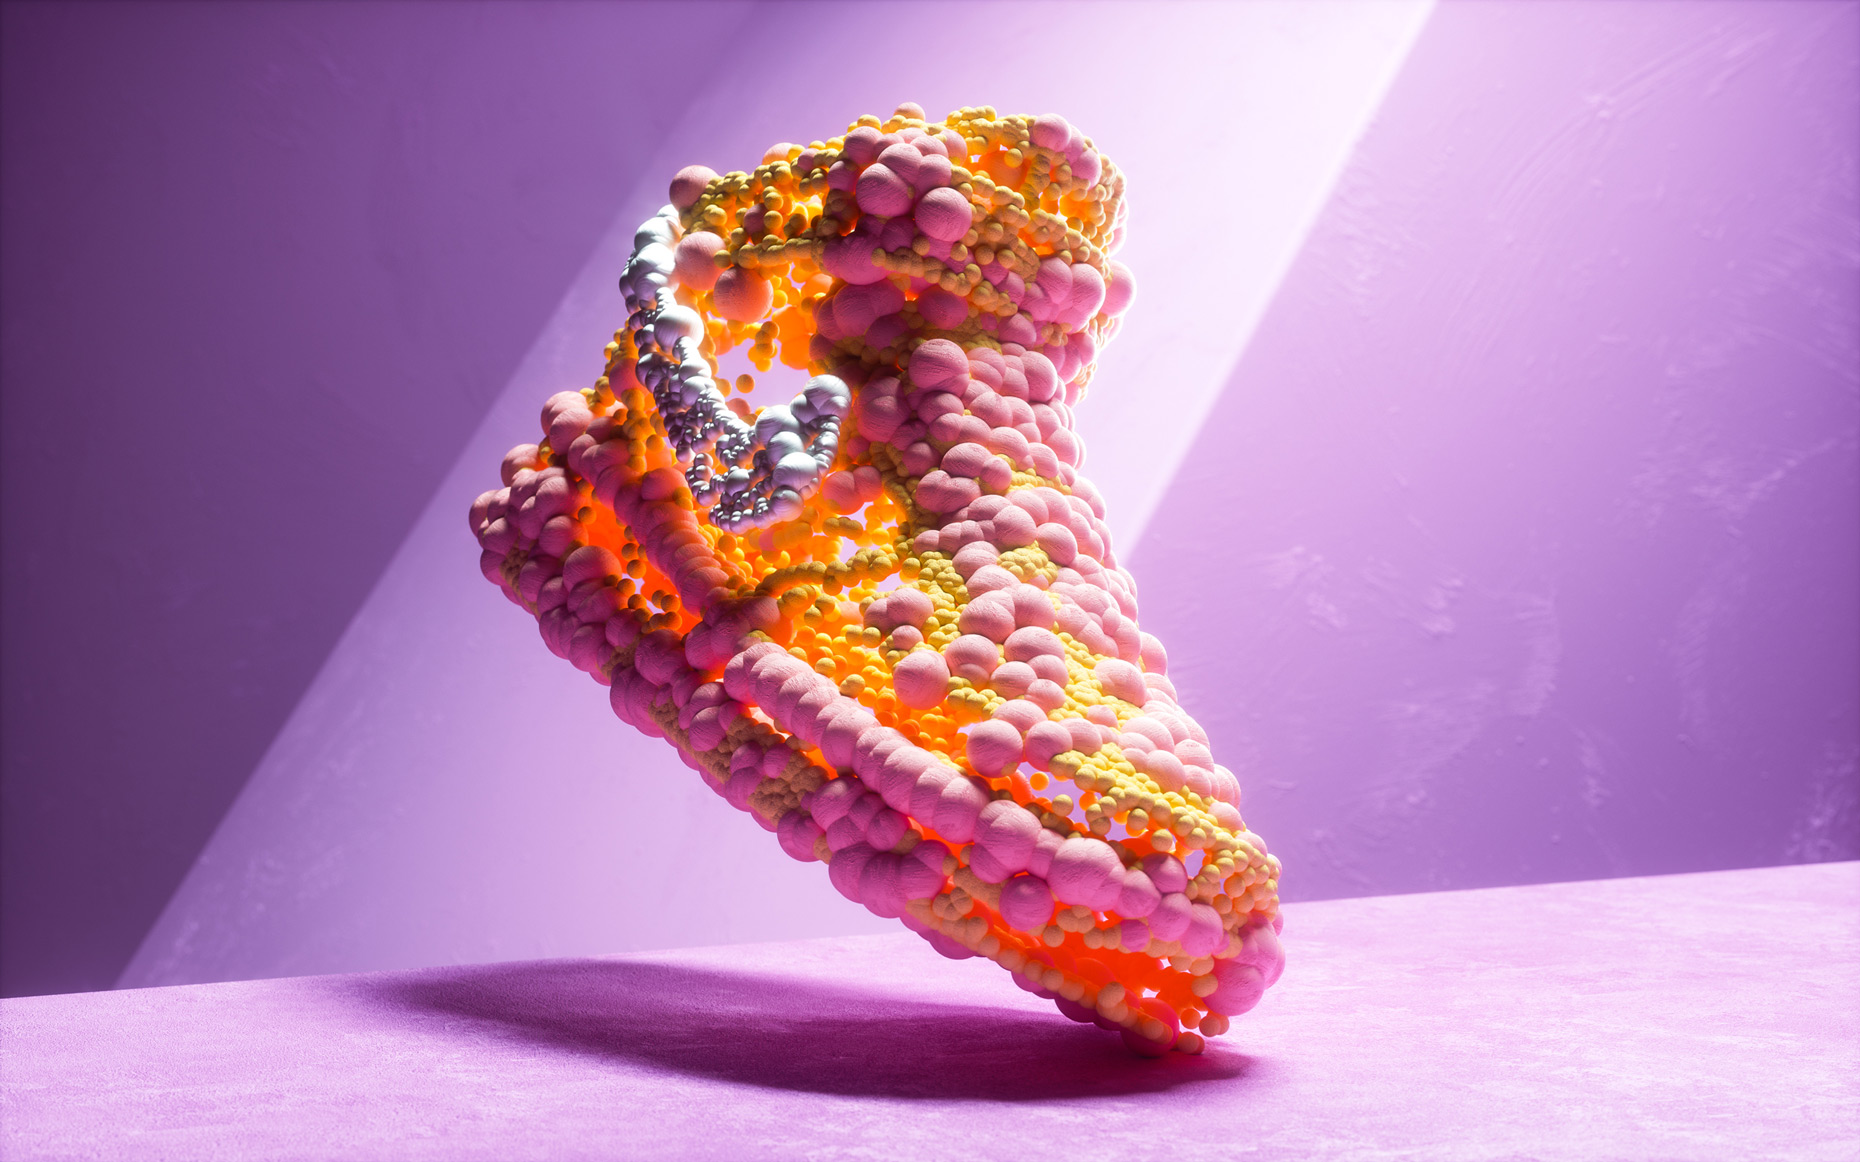 Nike_Abstract_AirForce01_Sculpture_Ben-Fearnley.jpg